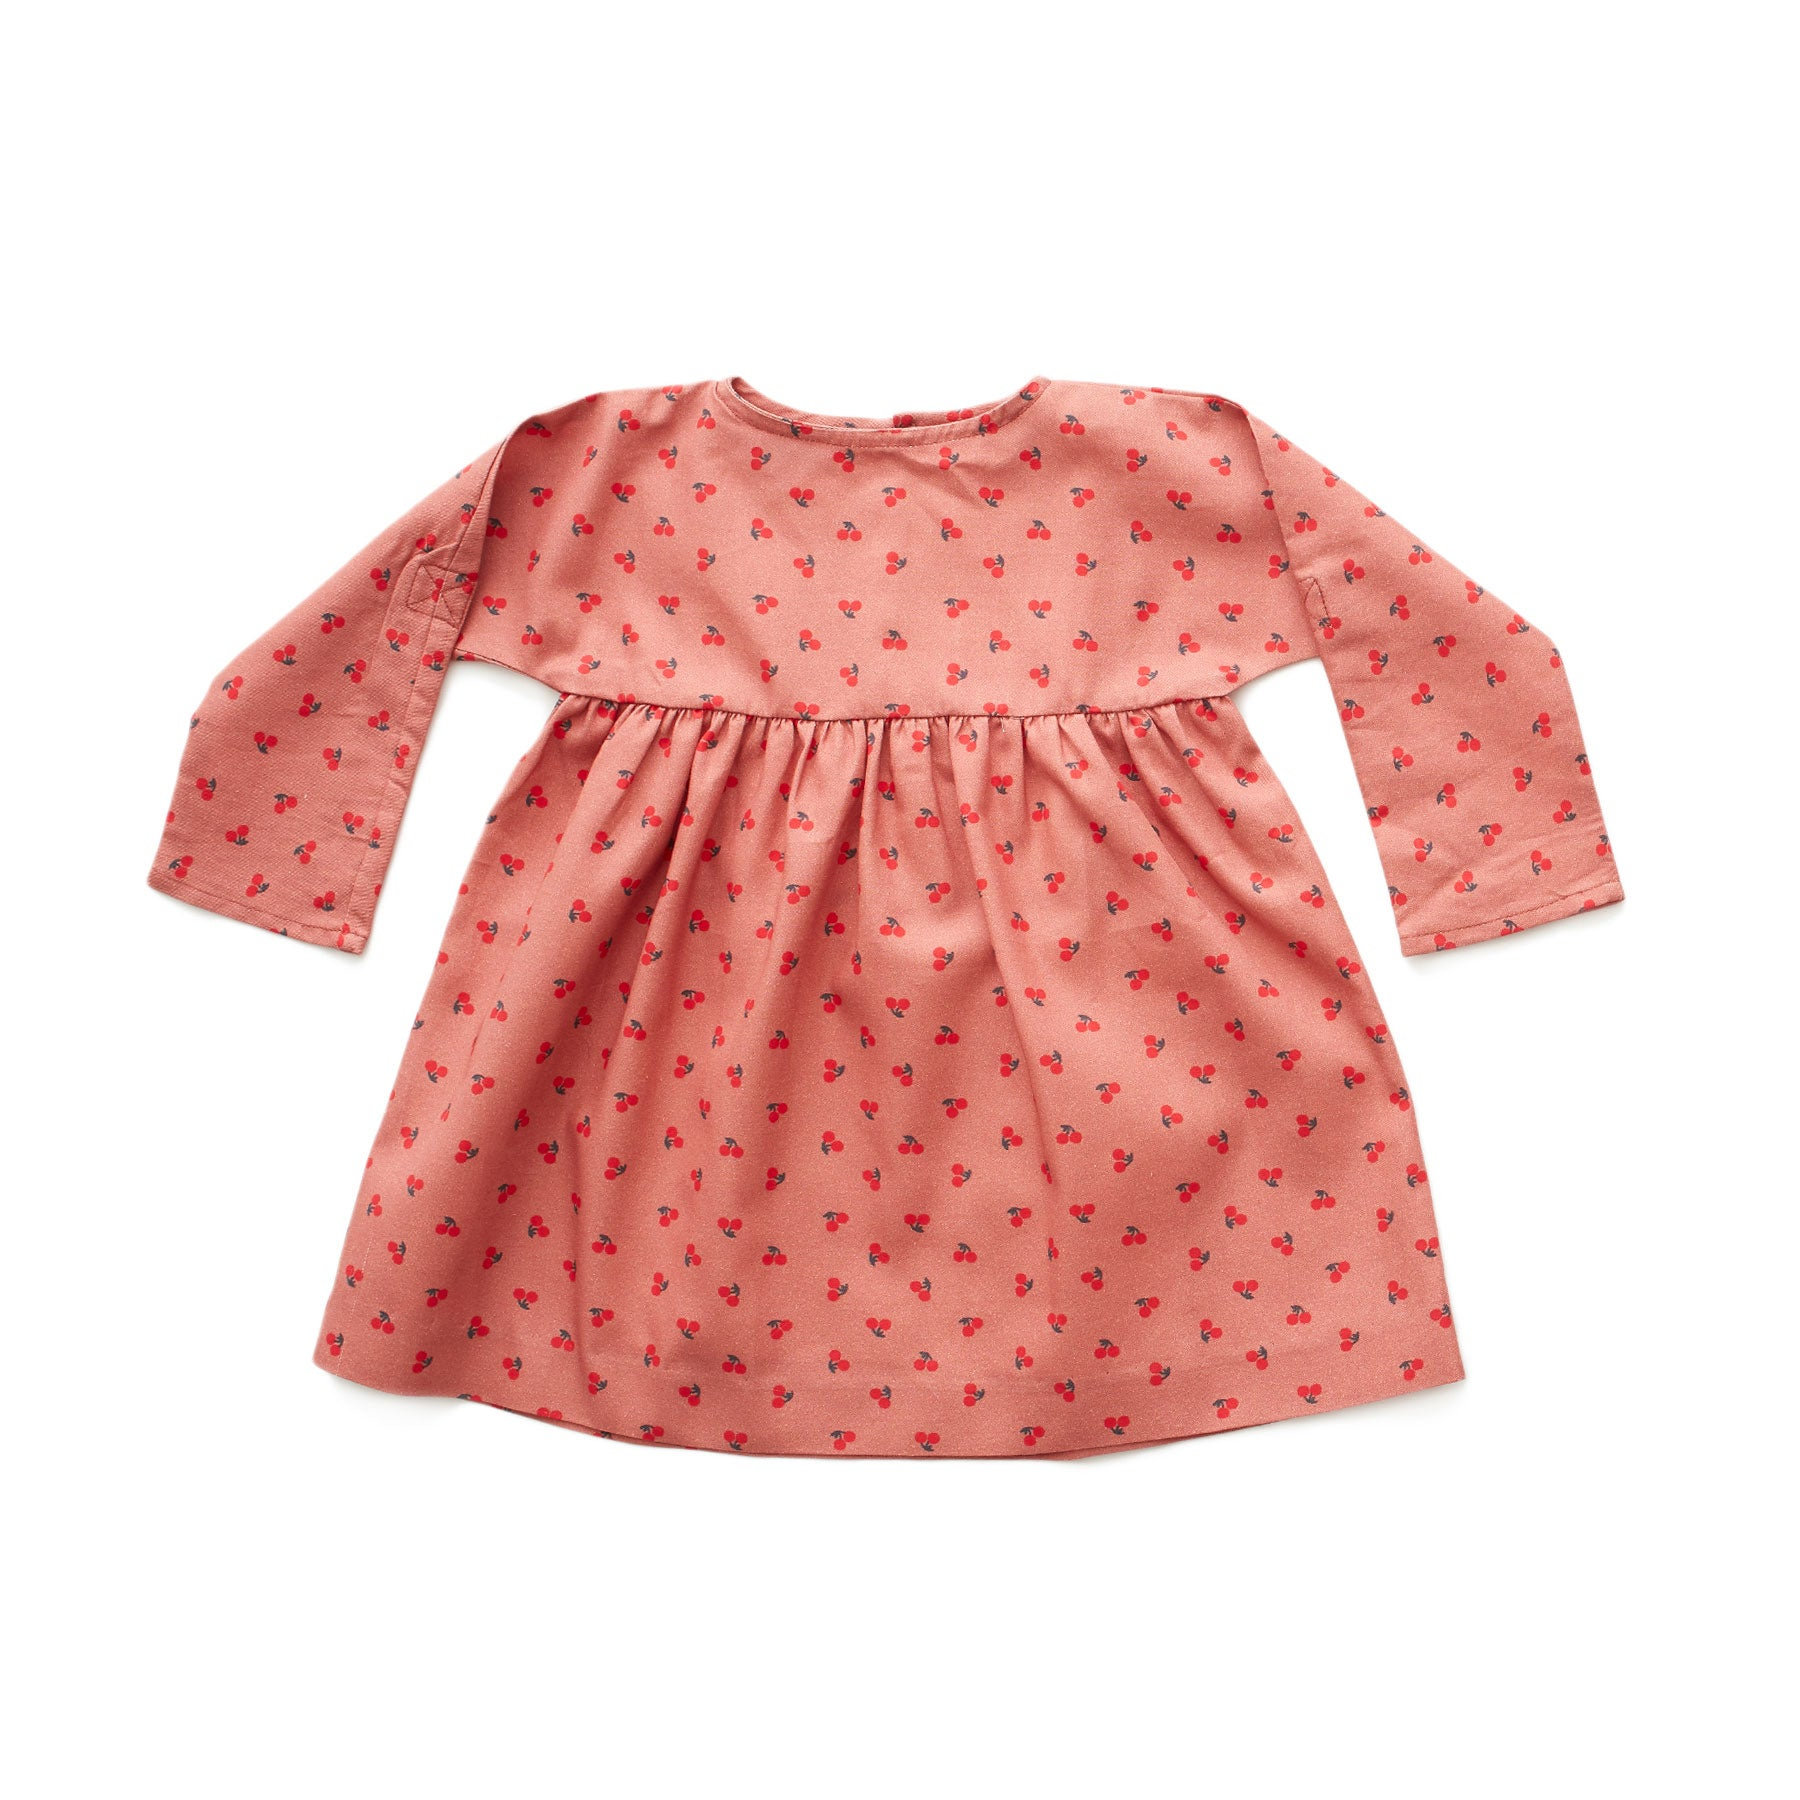 Oeuf Cherries Dress - Ladida